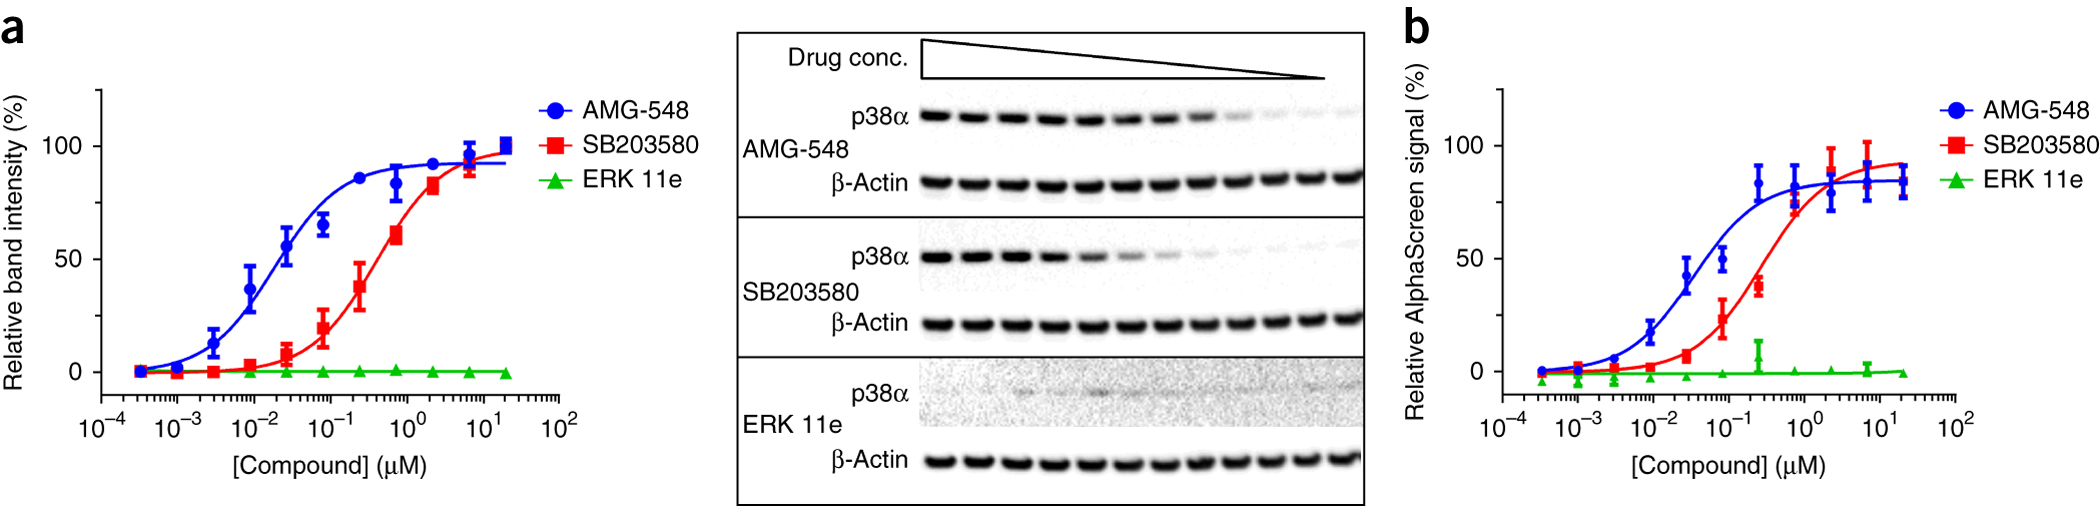 Illustration of the amount of stabilized soluble p38α accessible for detection in the presence of increasing concentrations of compounds in HL-60 cells.